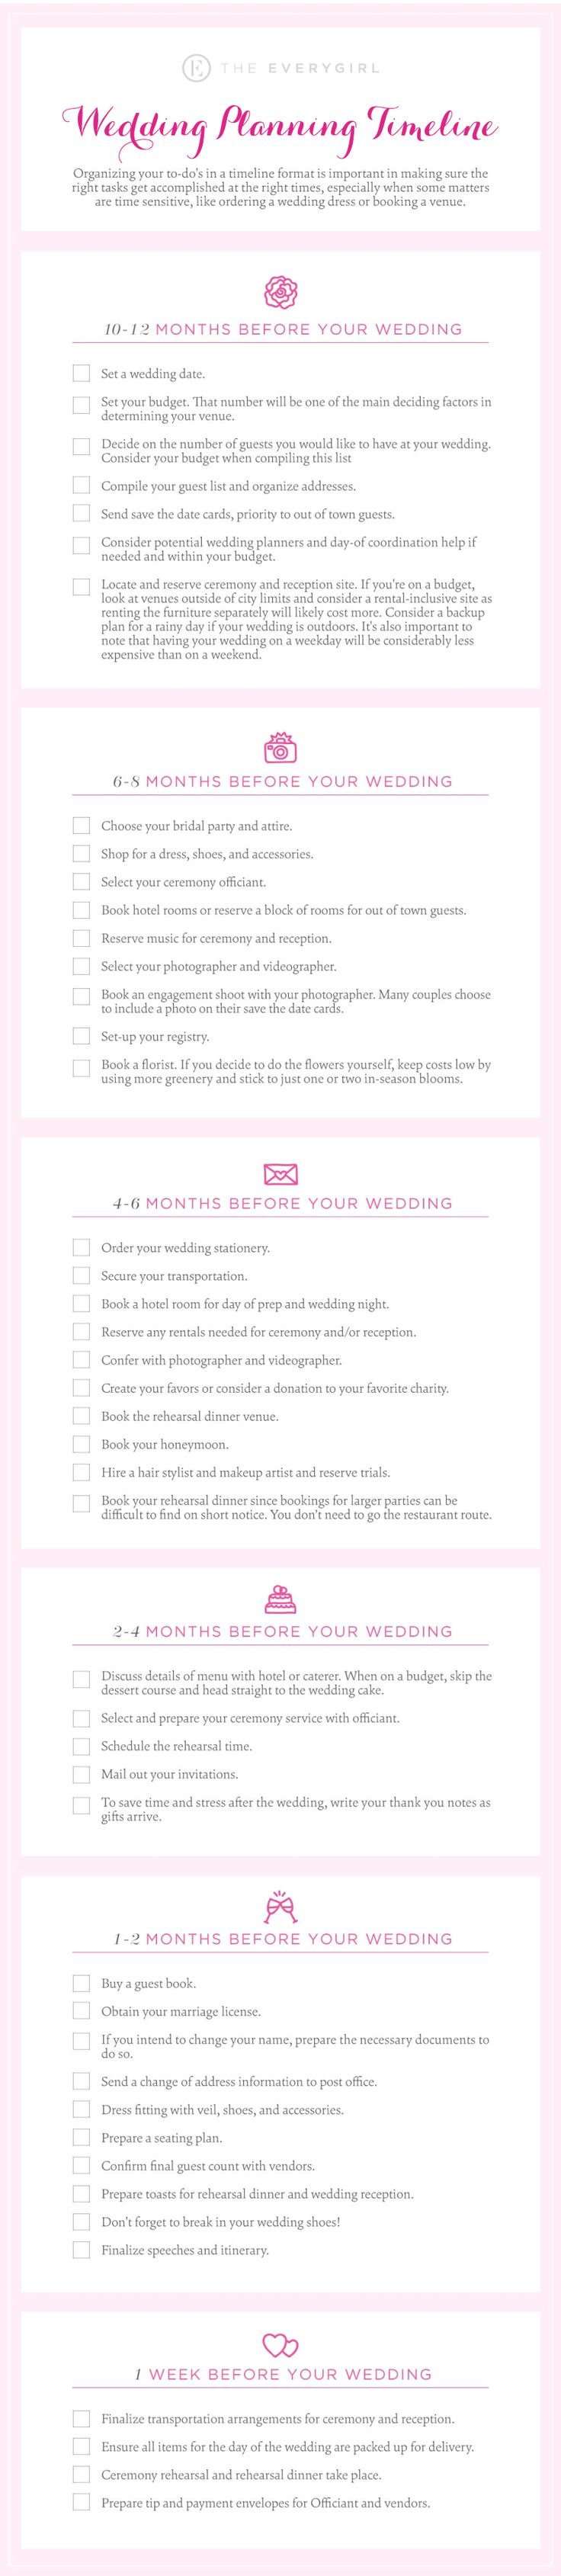 The 12-Month Wedding Planning Timeline #theeverygirl